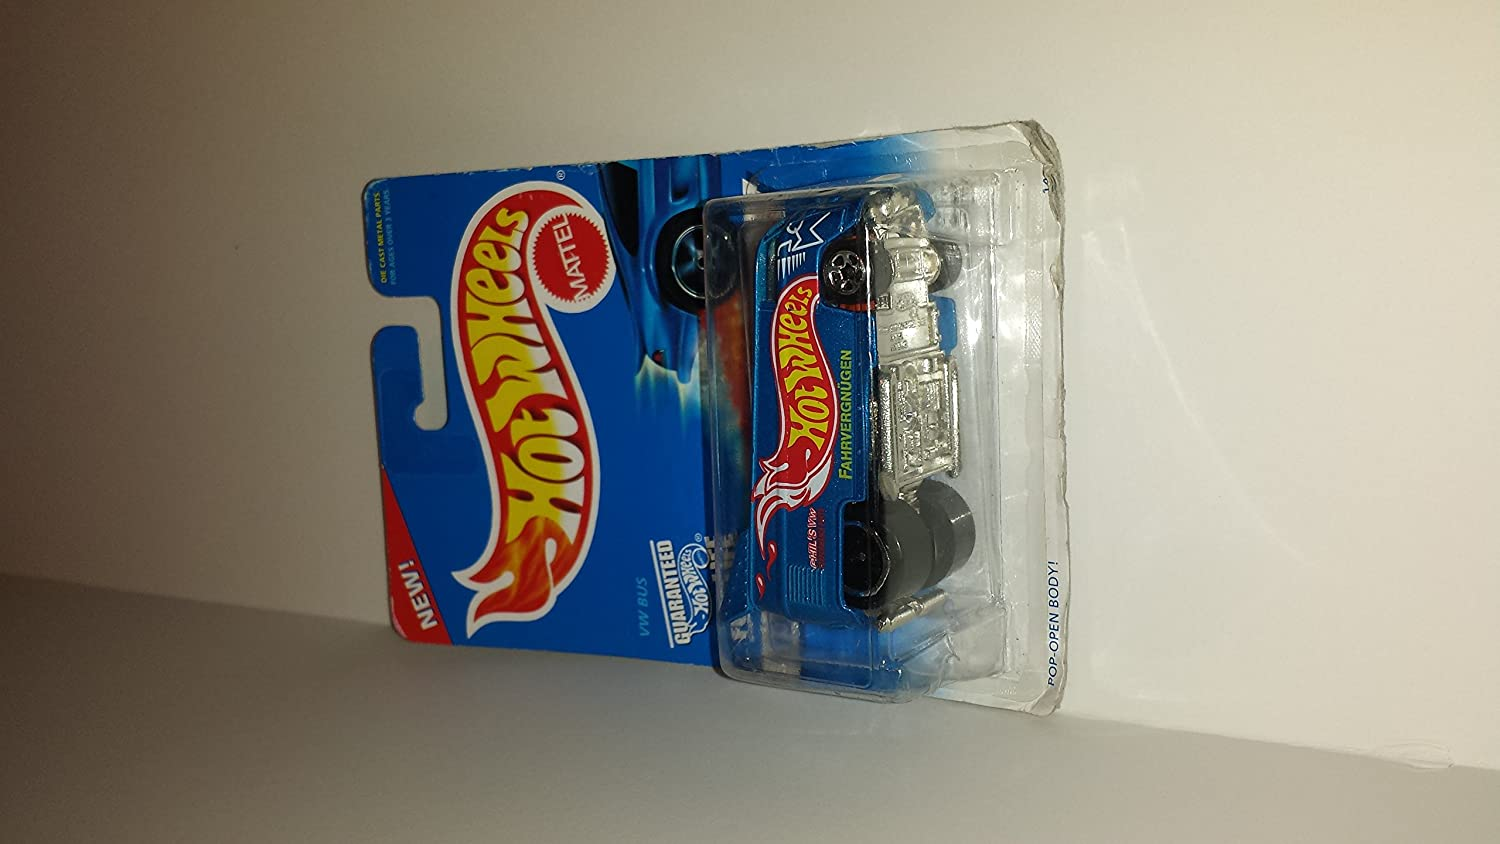 Hot Wheels - 1996 First Editions - 6 of 12 - VW (Volkswagen) Bus - Blue Body Color w/graphics - Collector 372 by Hot Wheels